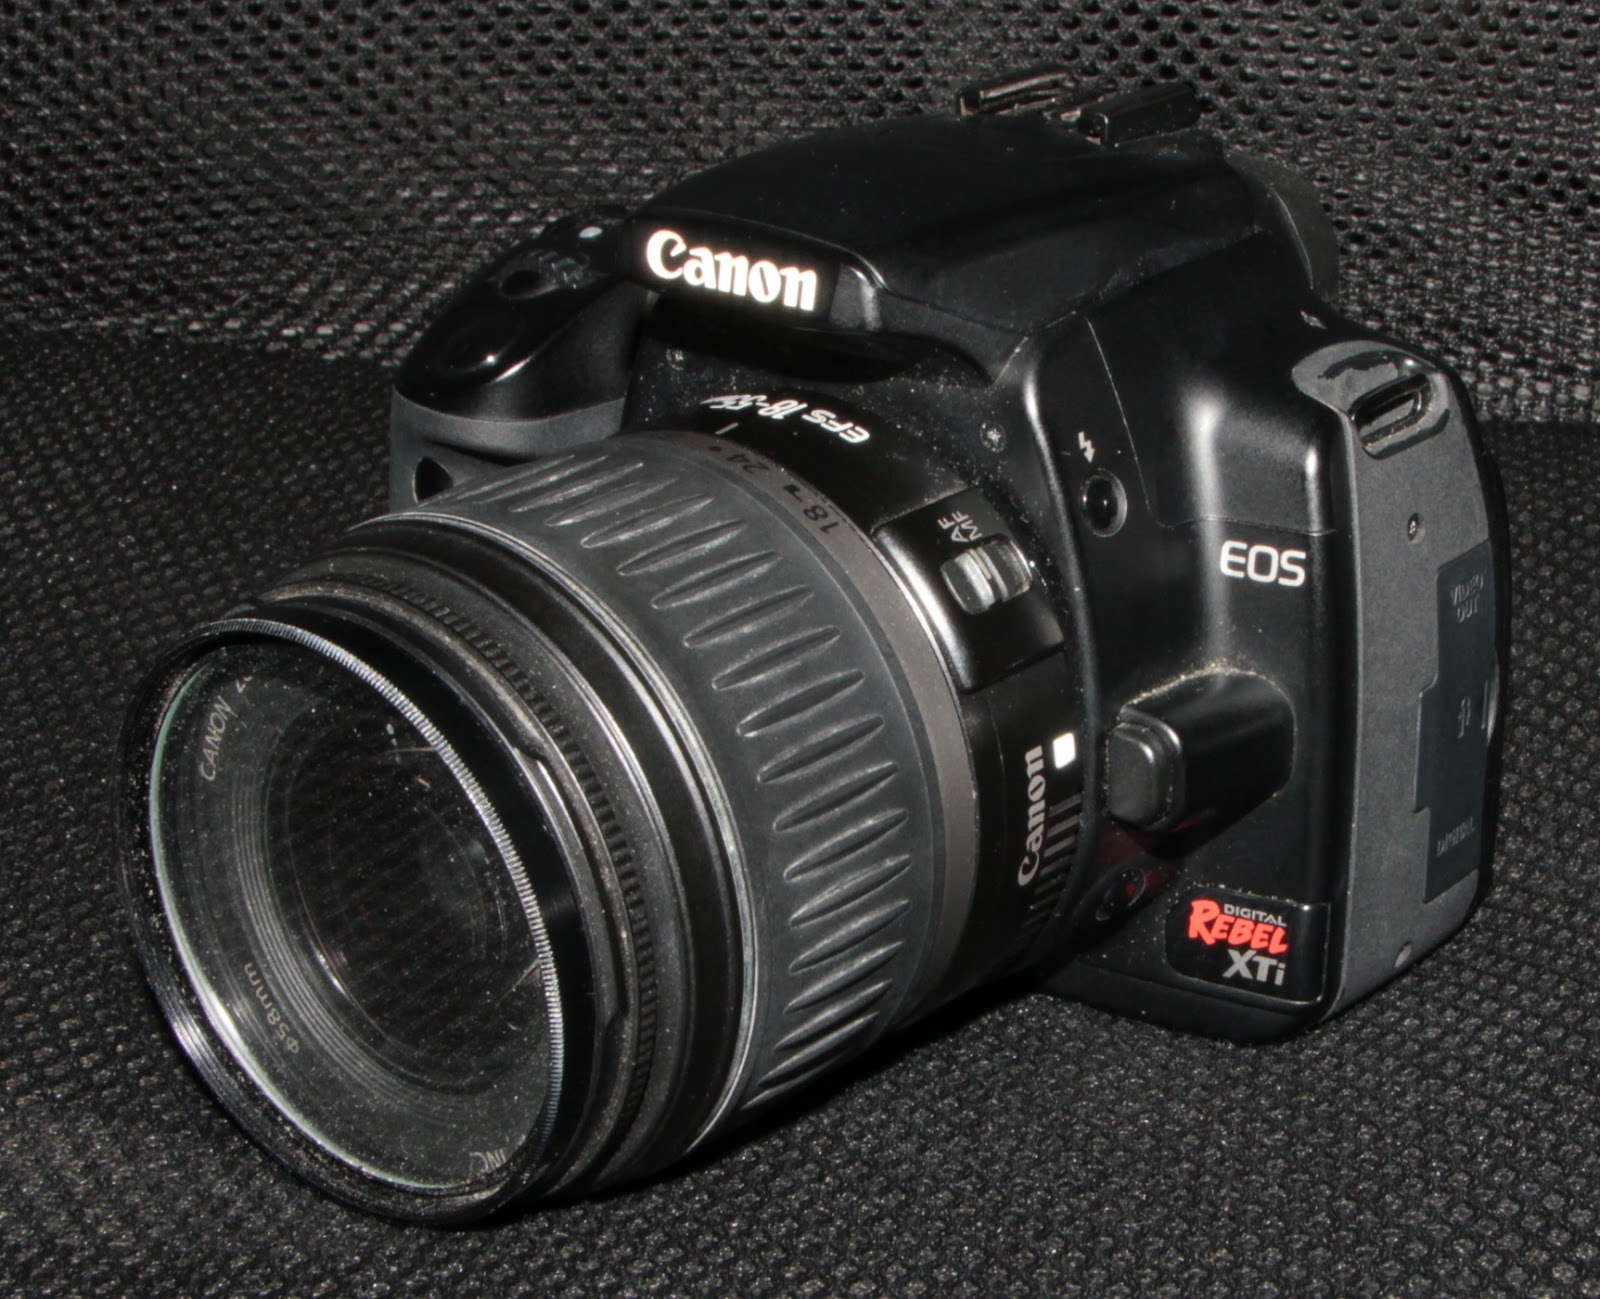 I got this old EOS 400D from a friend for about 35 bucks. She said it won't  power on, even with a fully-charged battery. Might as well have a crack at  it, ...